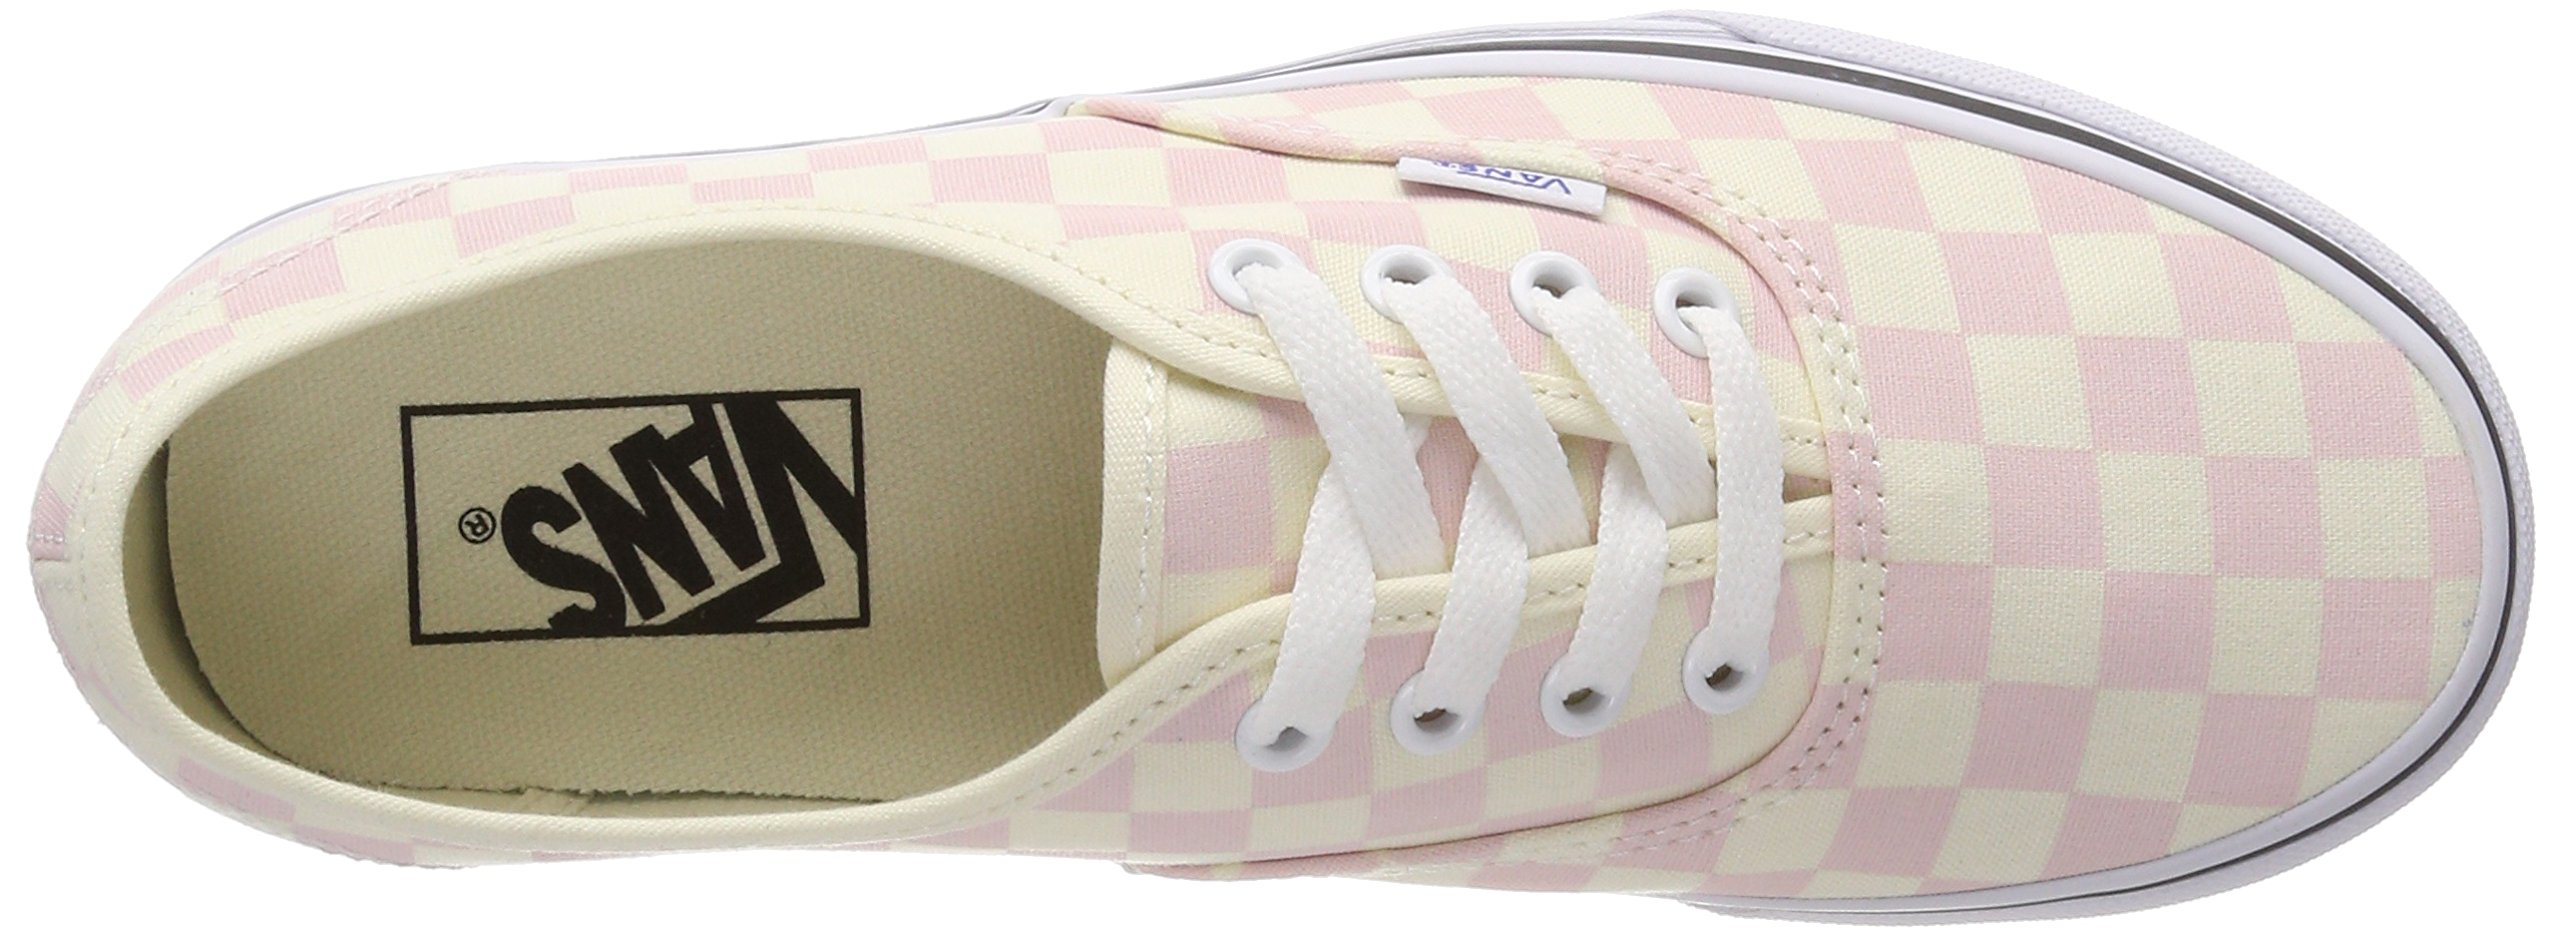 Vans Women's Authentic Trainers, Pink (Checkerboard) Chalk Pink/Classic White Q8l, 5.5 UK 38.5 EU by Vans (Image #7)